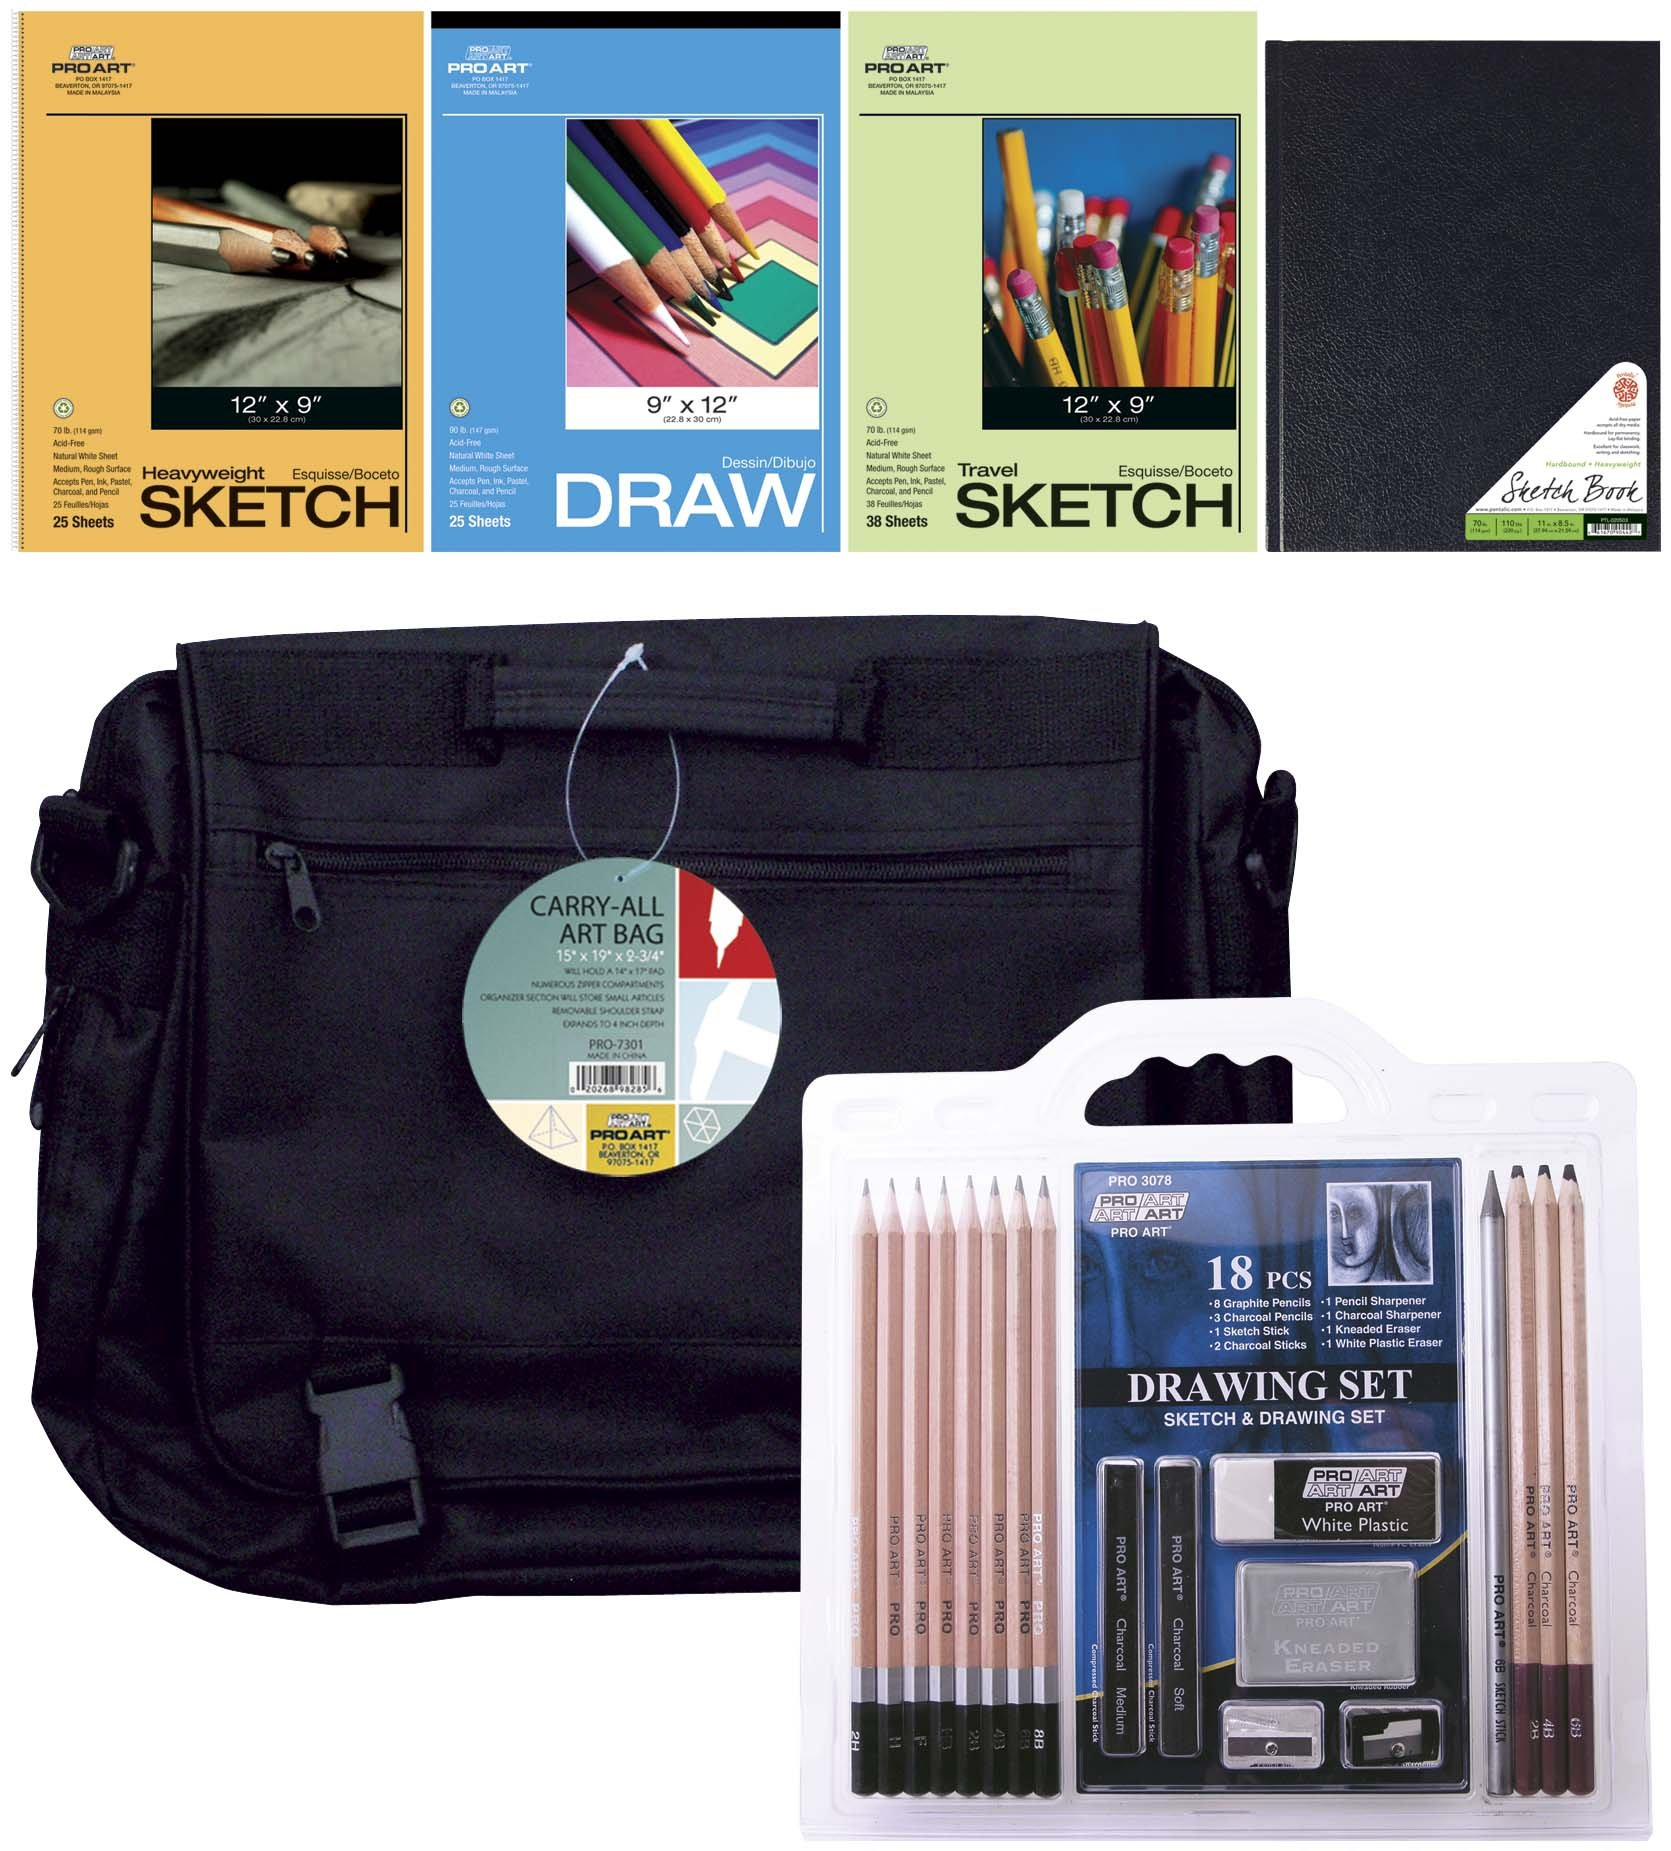 PRO ART 16318Pro Art Art on The Go Drawing Set, 23-Piece by PRO ART